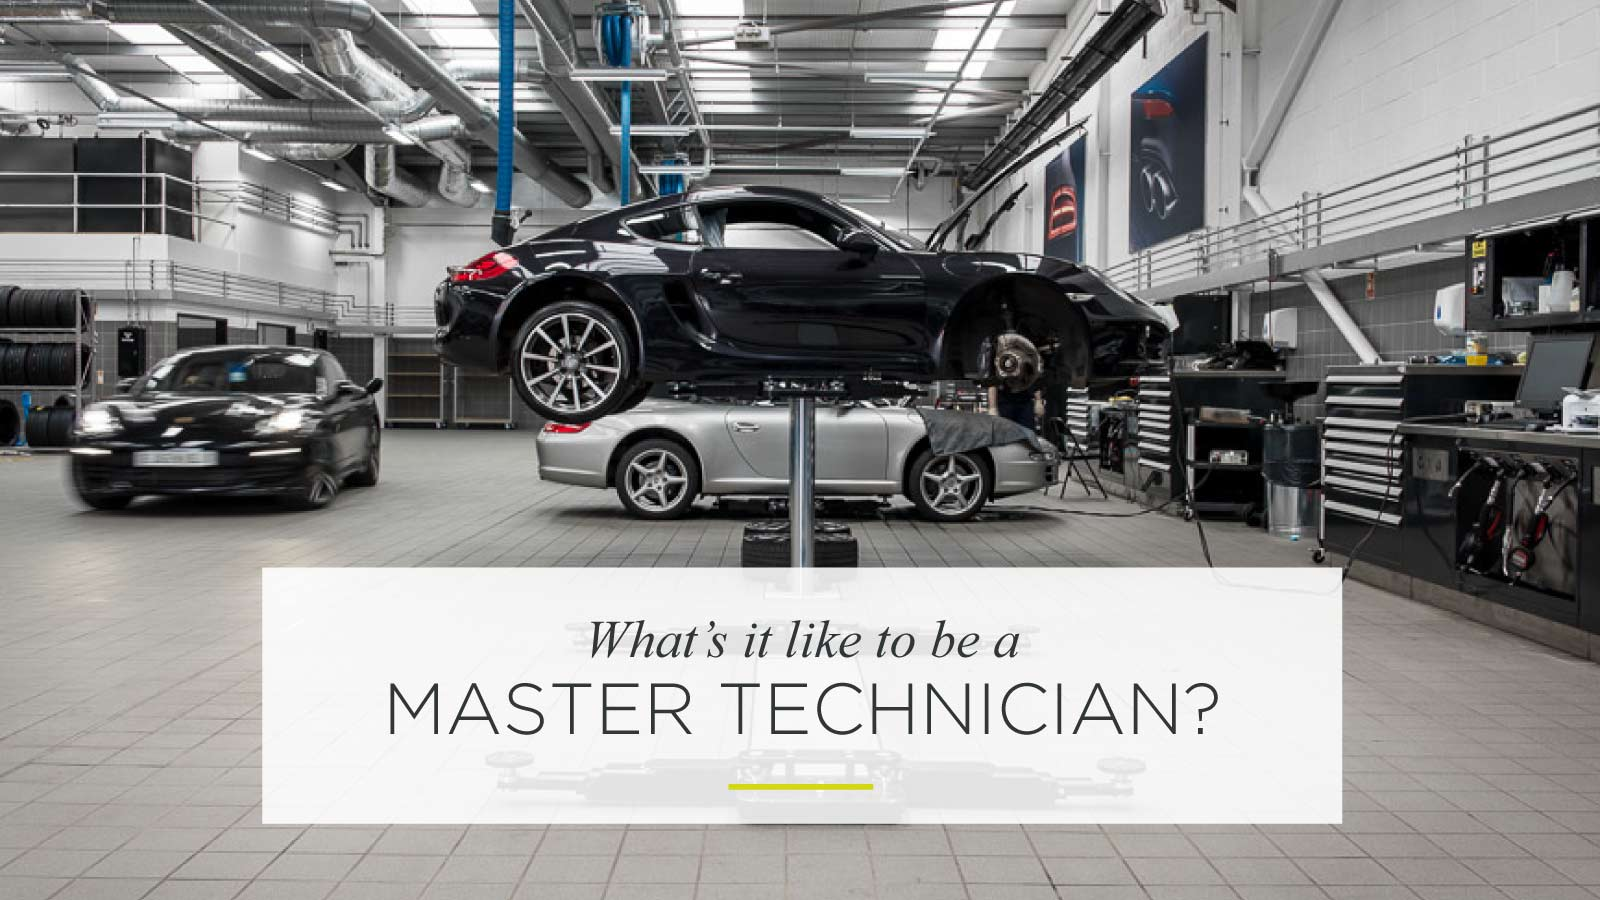 What's it like to be a master technician